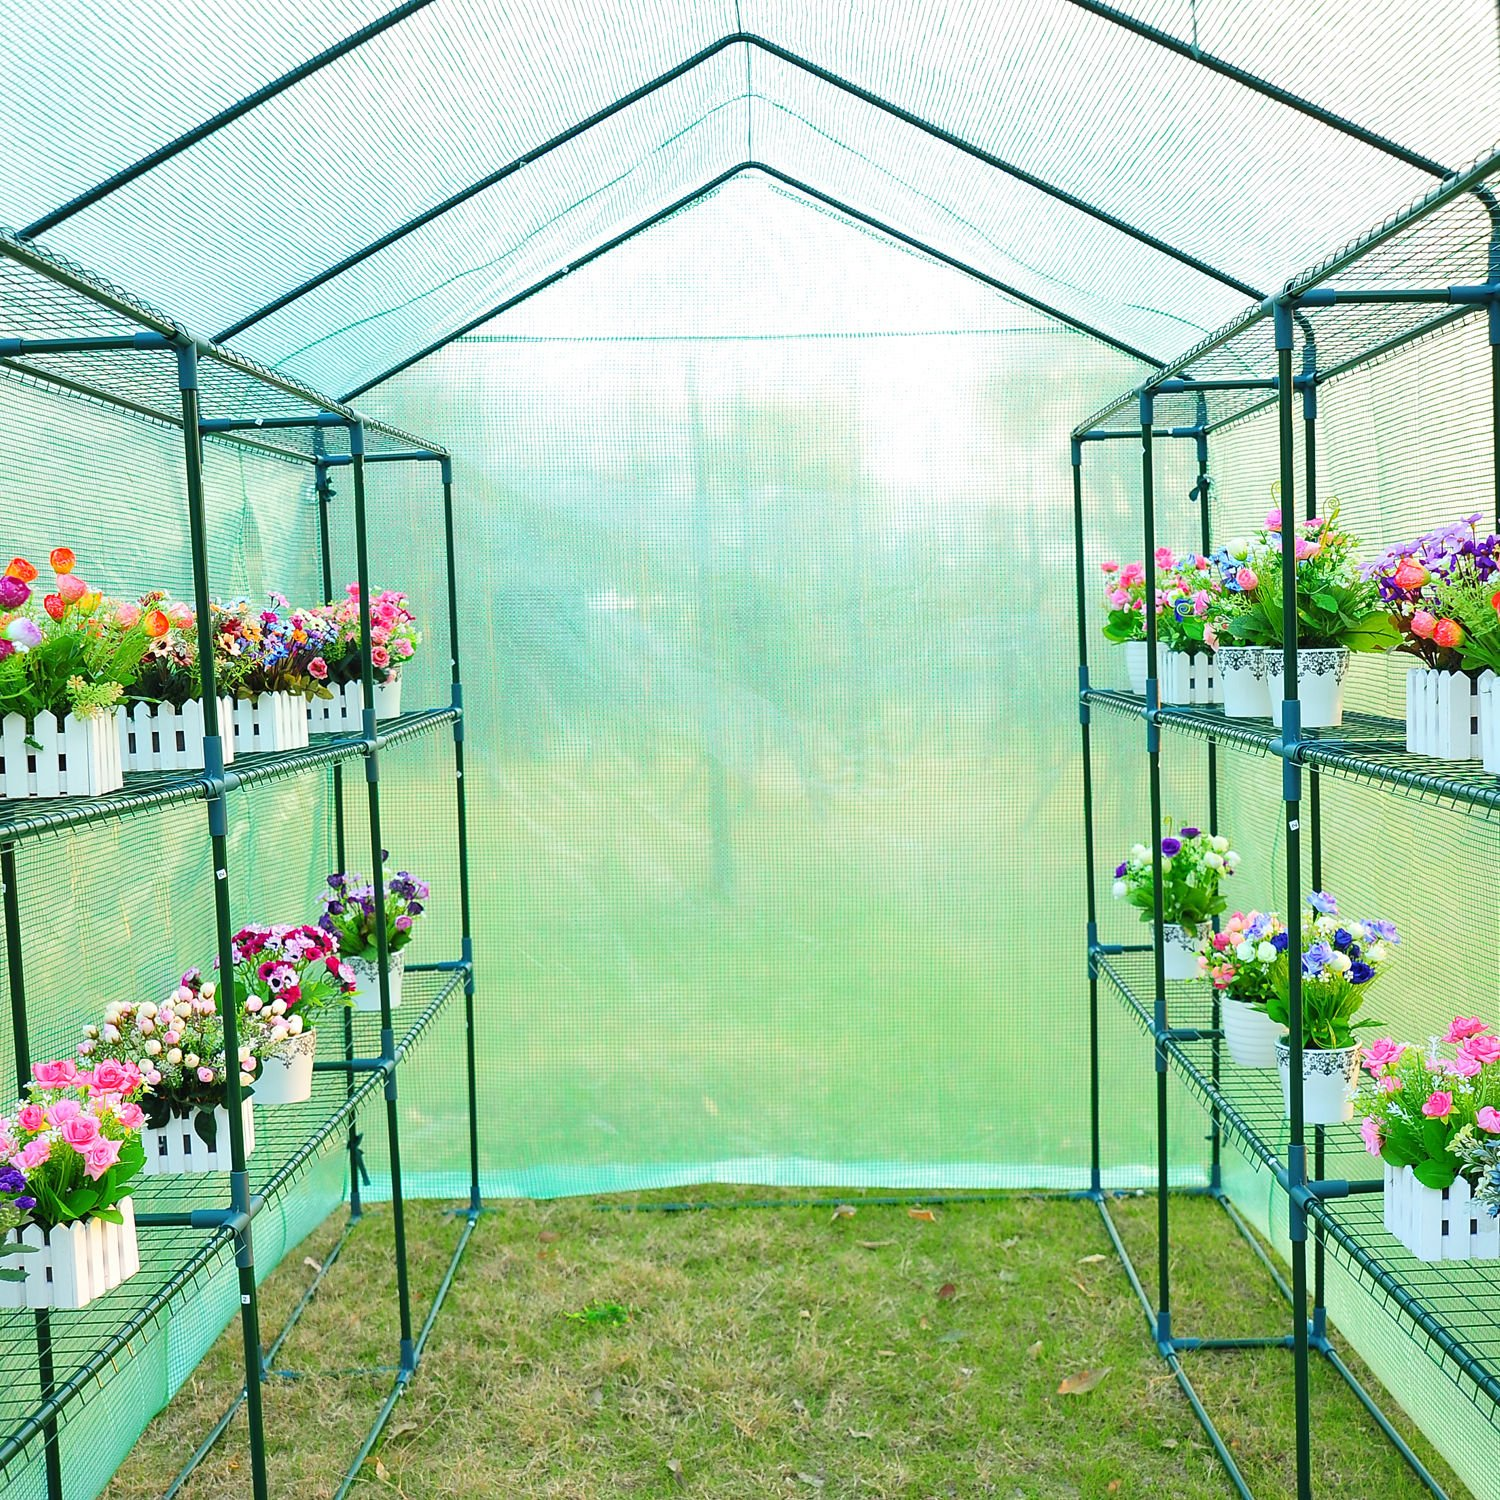 Outsunny 8' x 6' x 7' Outdoor Portable Walk-in Greenhouse by Outsunny (Image #9)